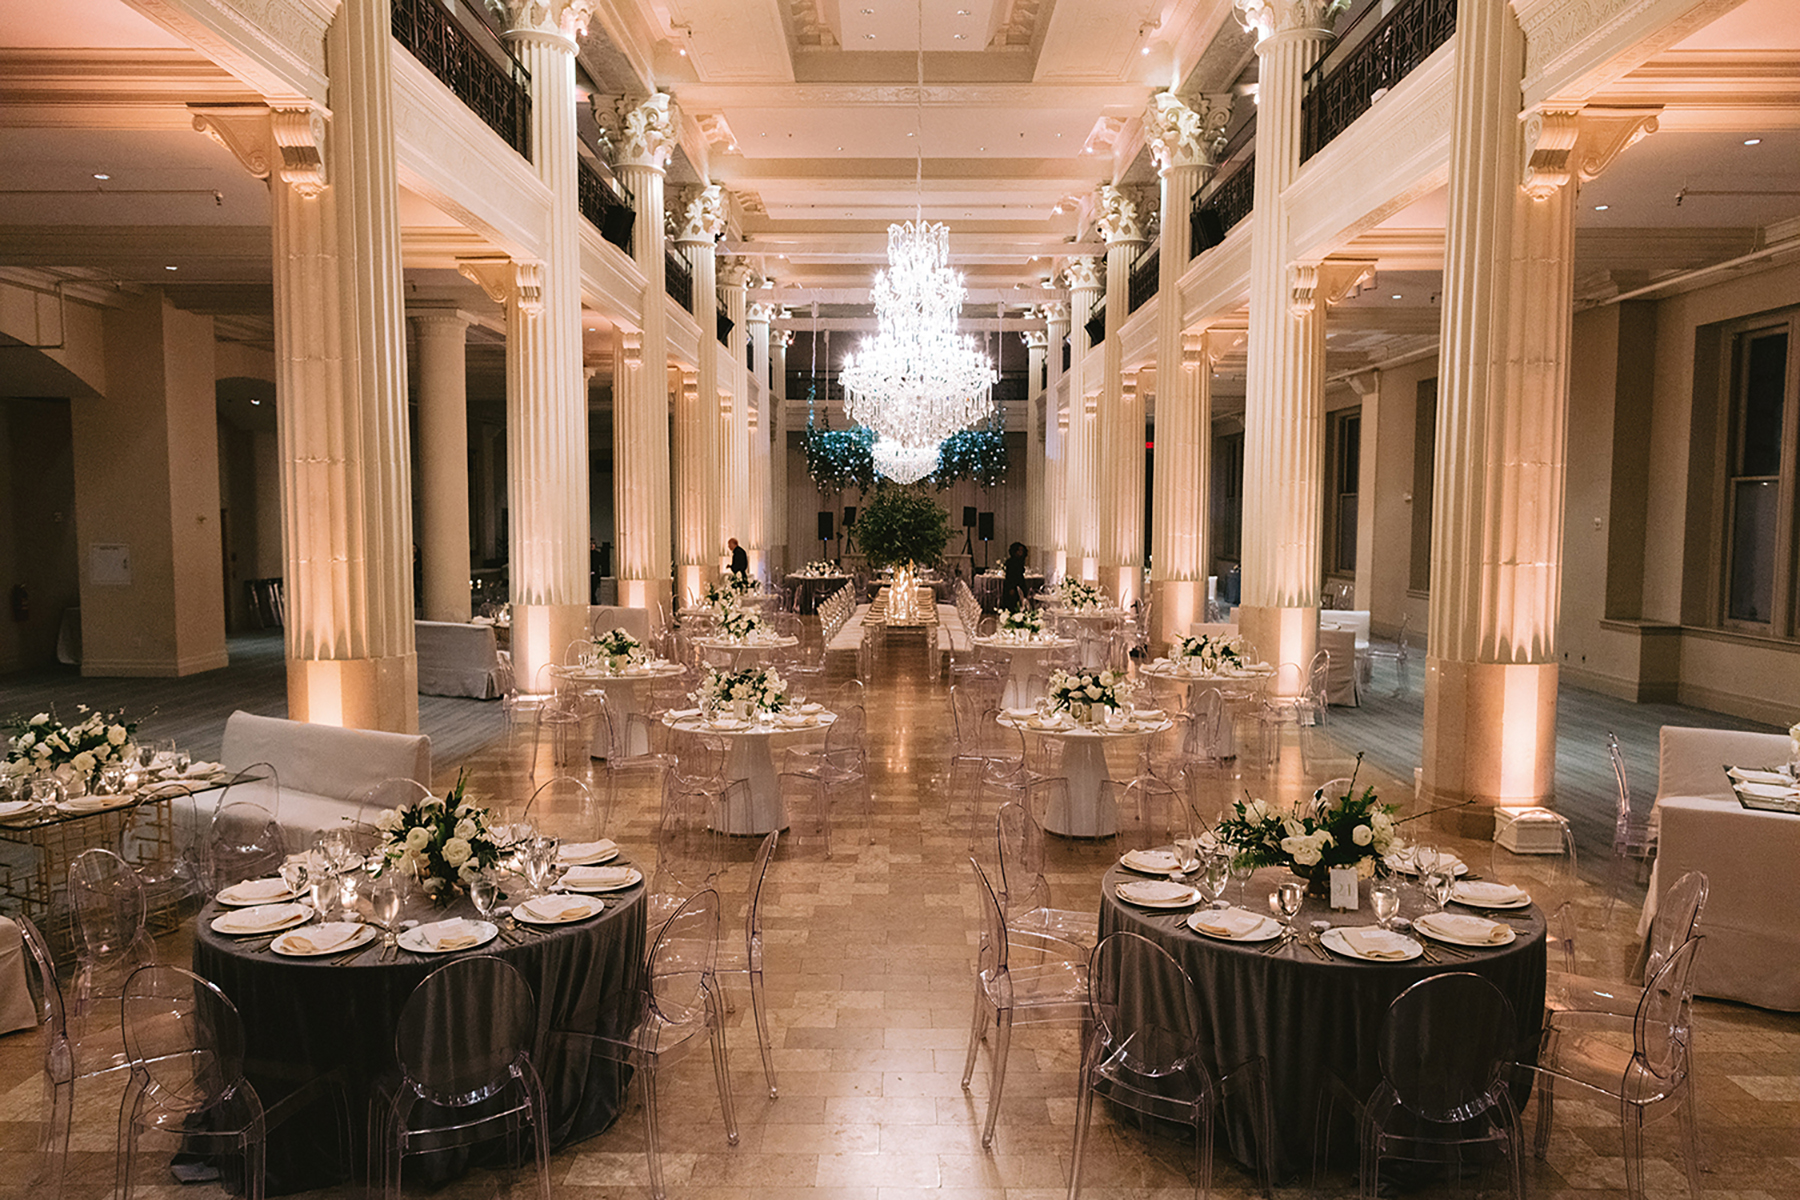 2 story wedding venue for large party - decor - gray